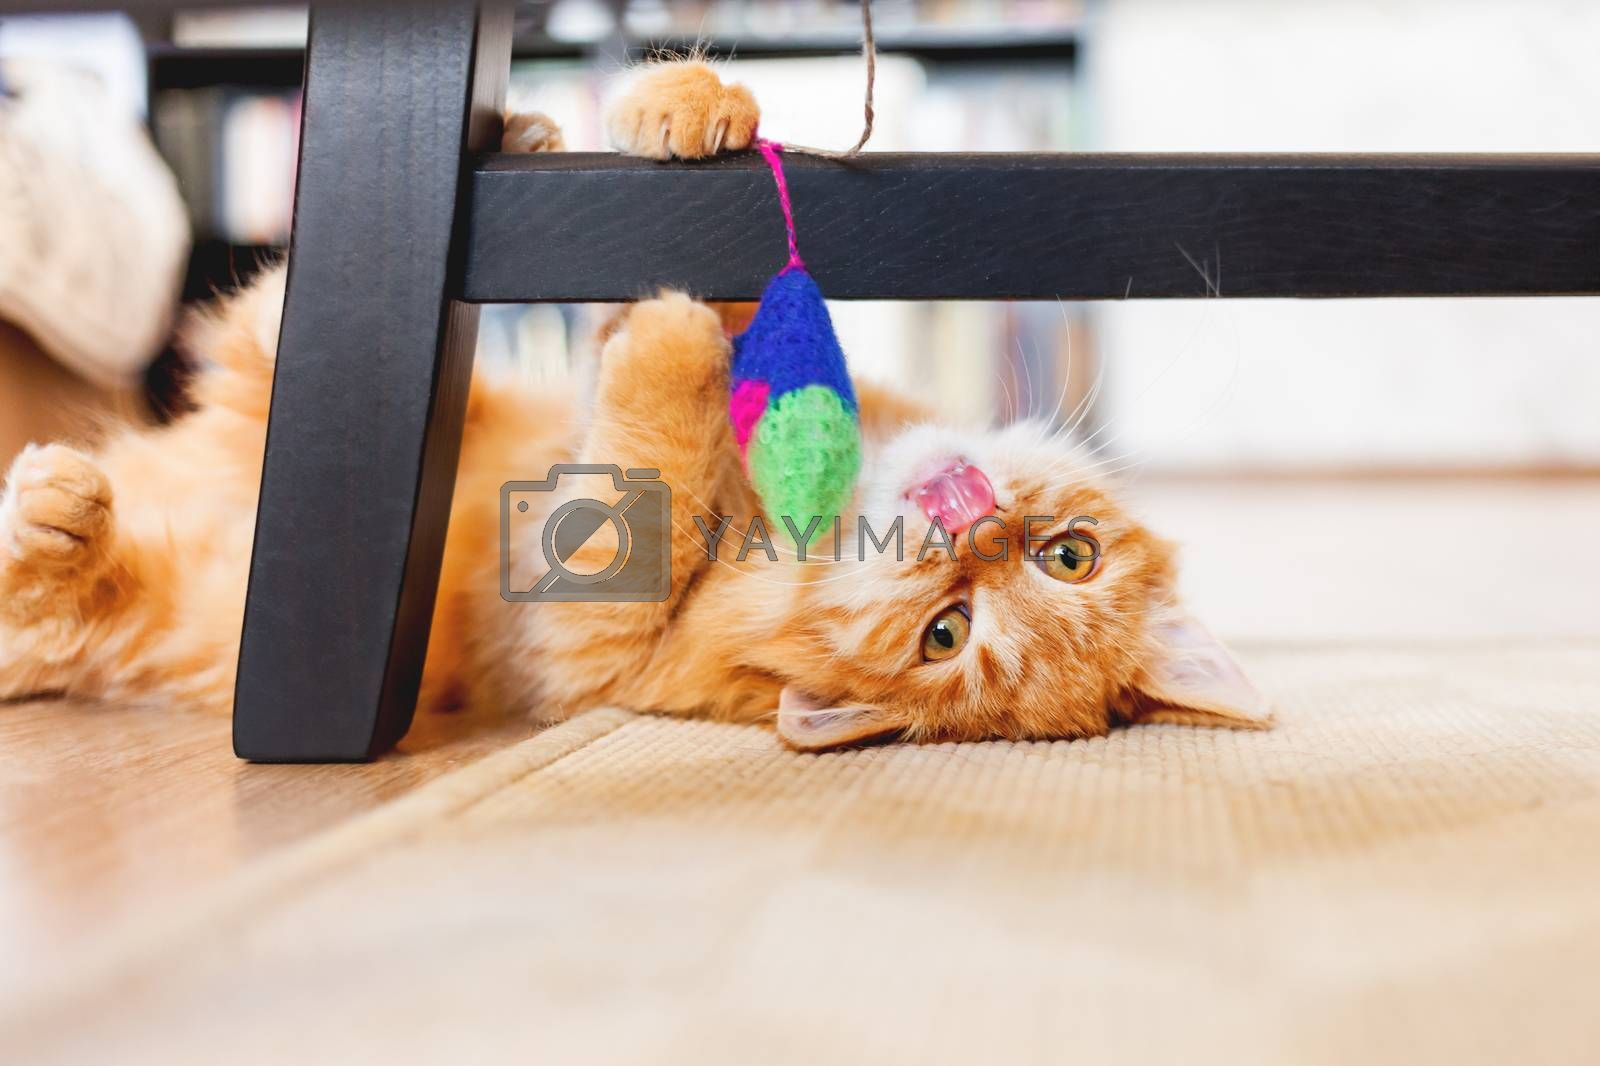 Cute ginger kitten plays with toy mouse on rope. Fluffy pet lies on carpet under black wooden chair. Domestic playful animal in cozy home.